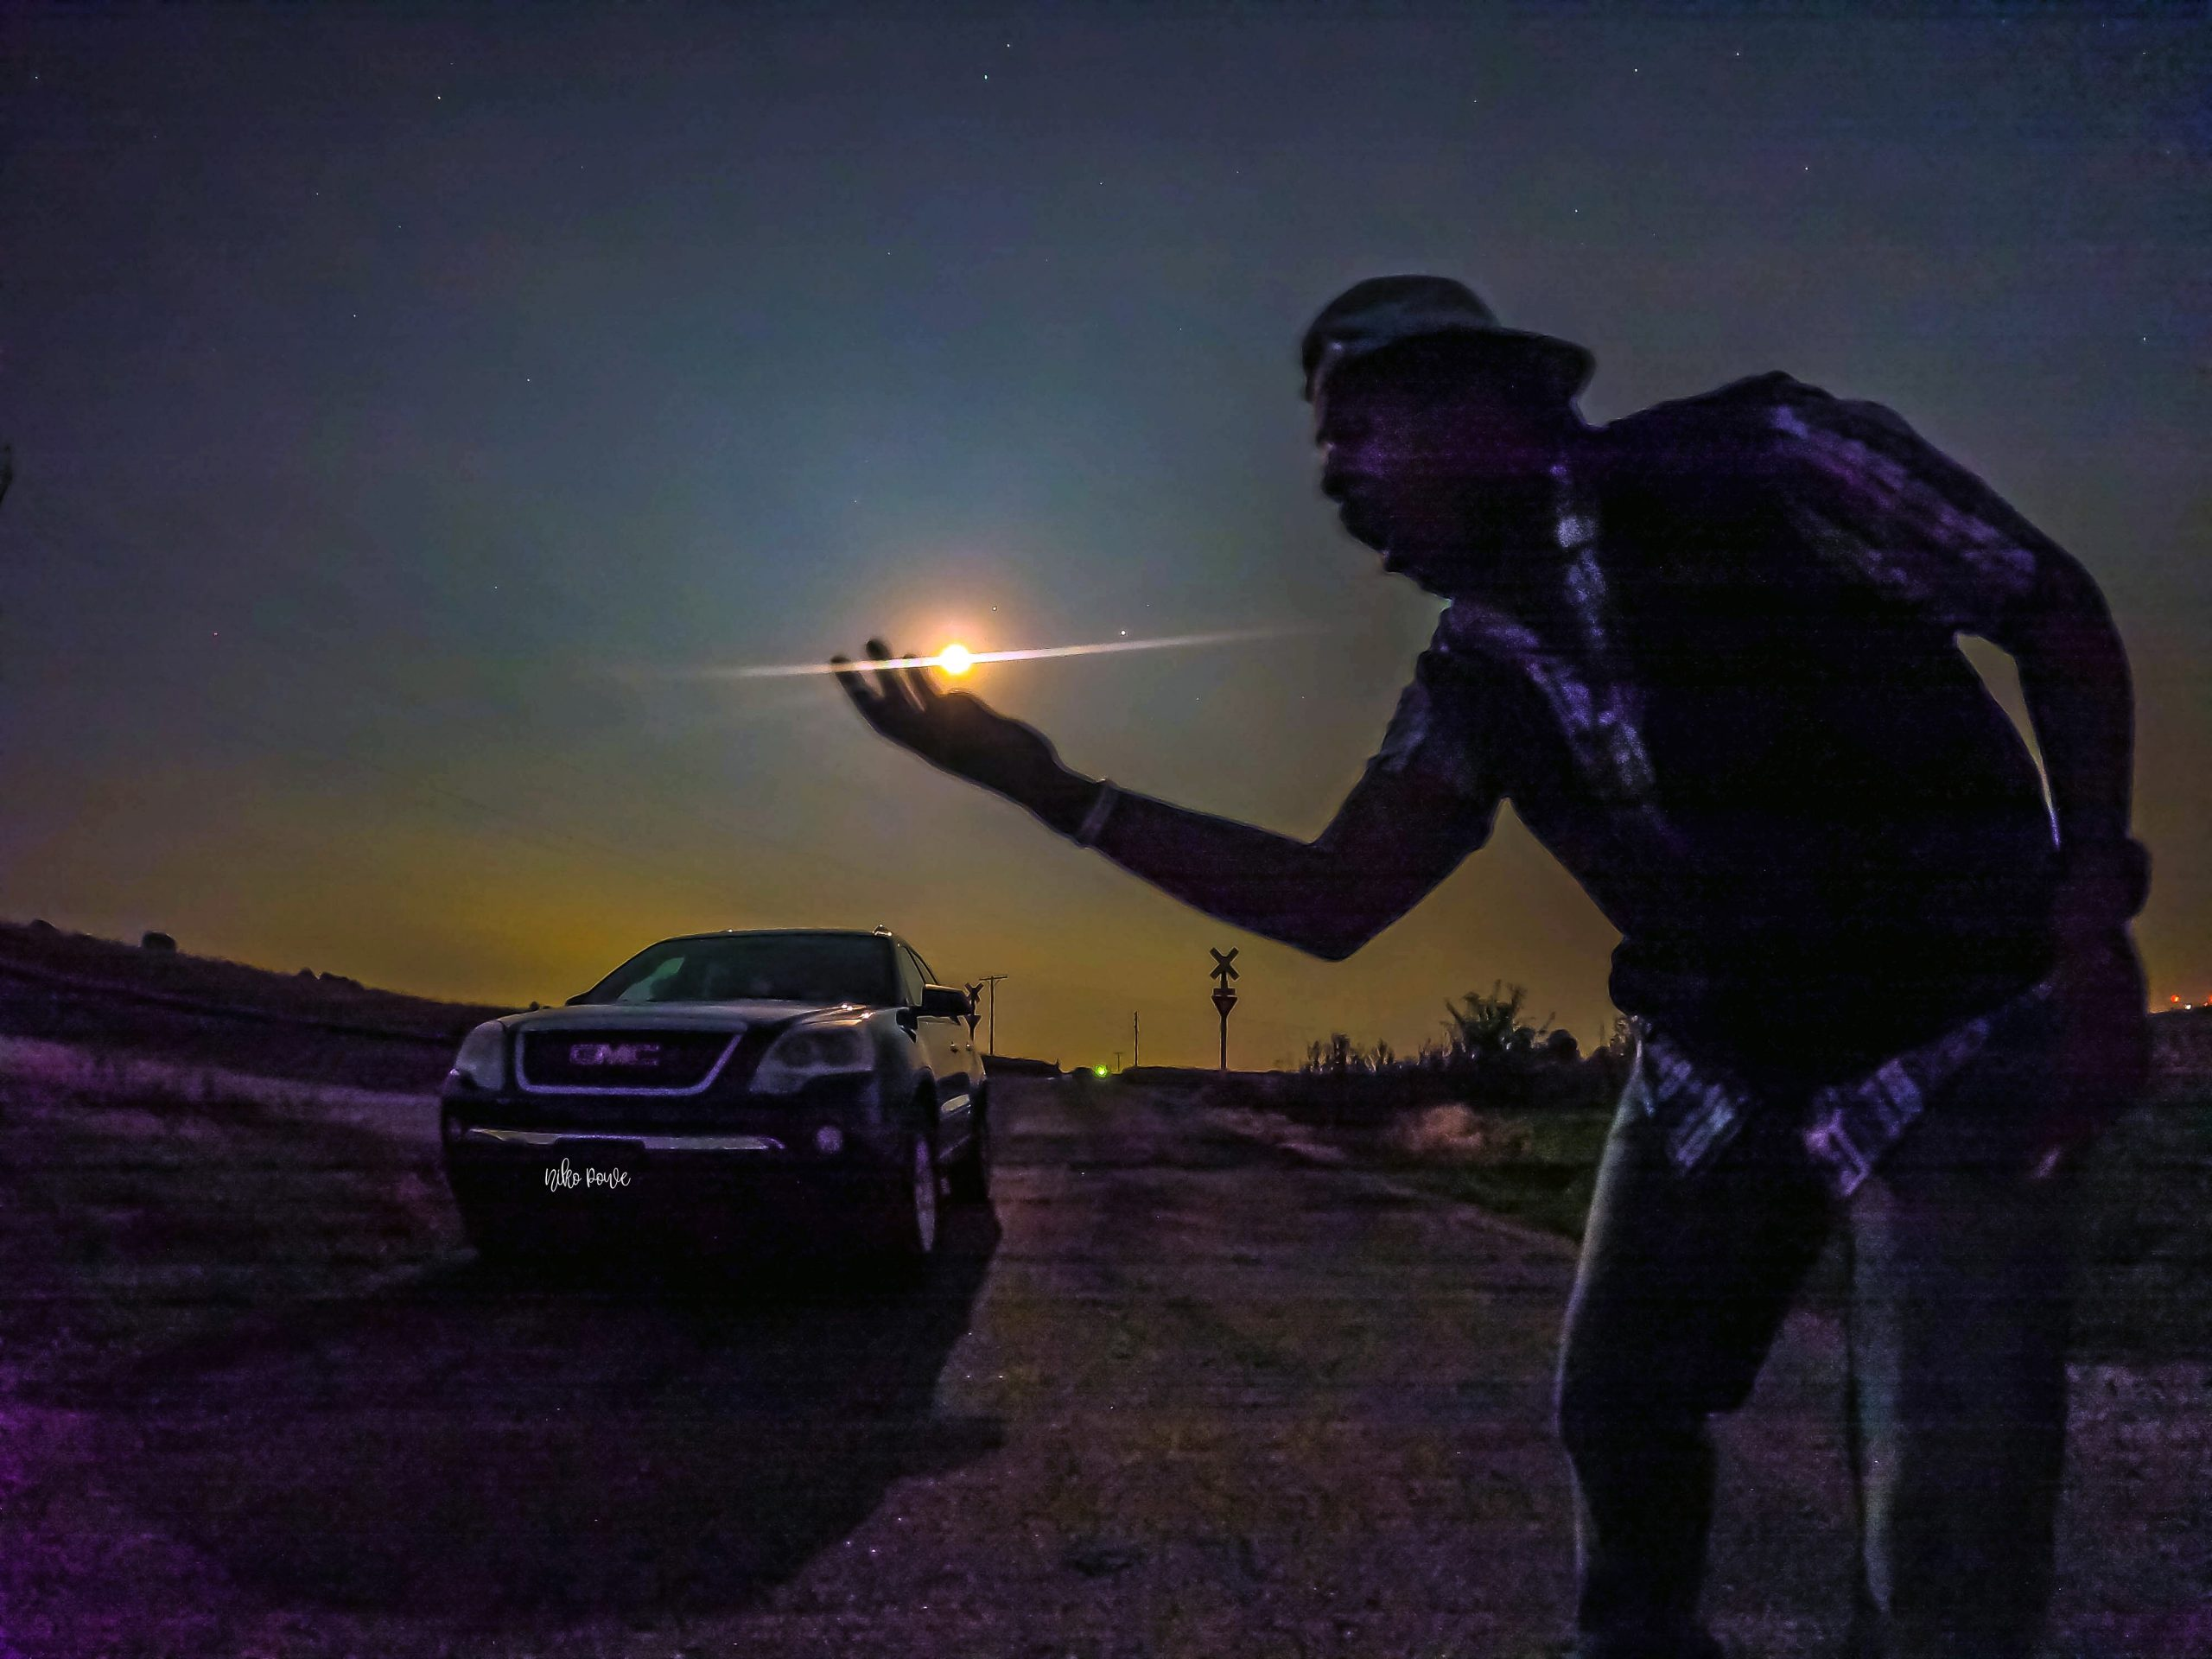 A man on a country road at night, holding out his hand as if holding the moon and planets.